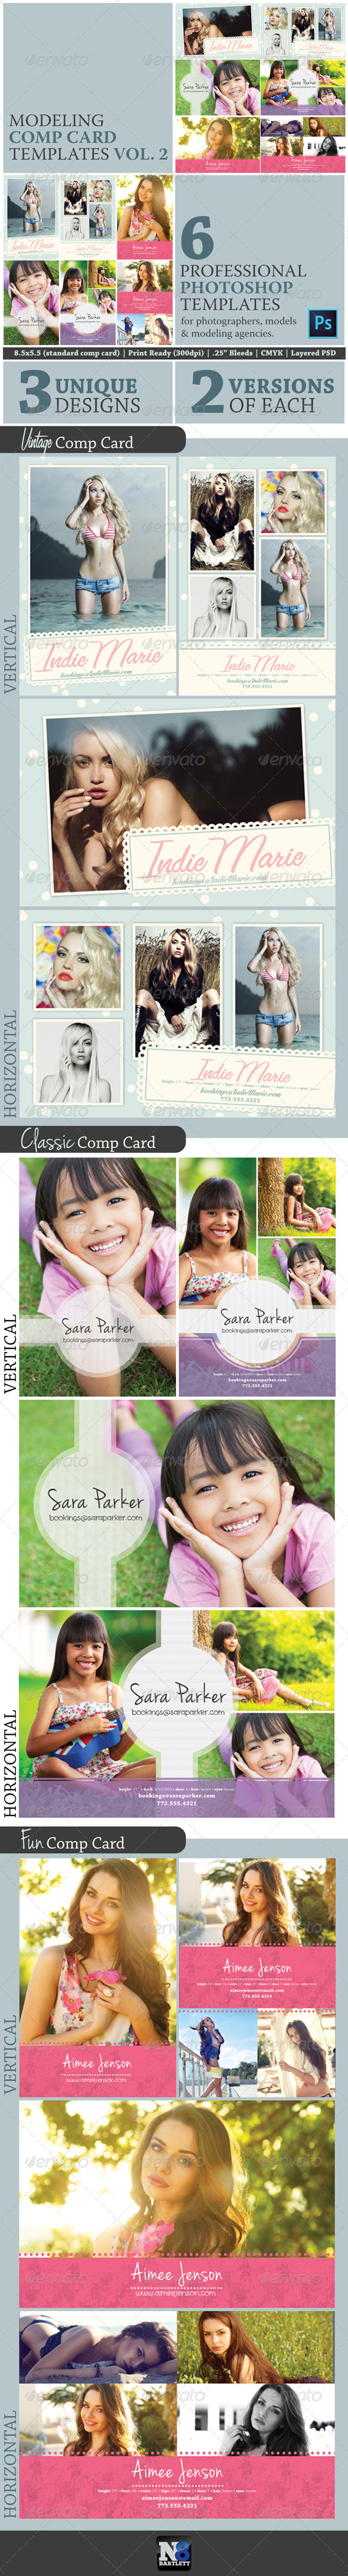 Comp Card Template Free Hitoriinfo - Free comp card template